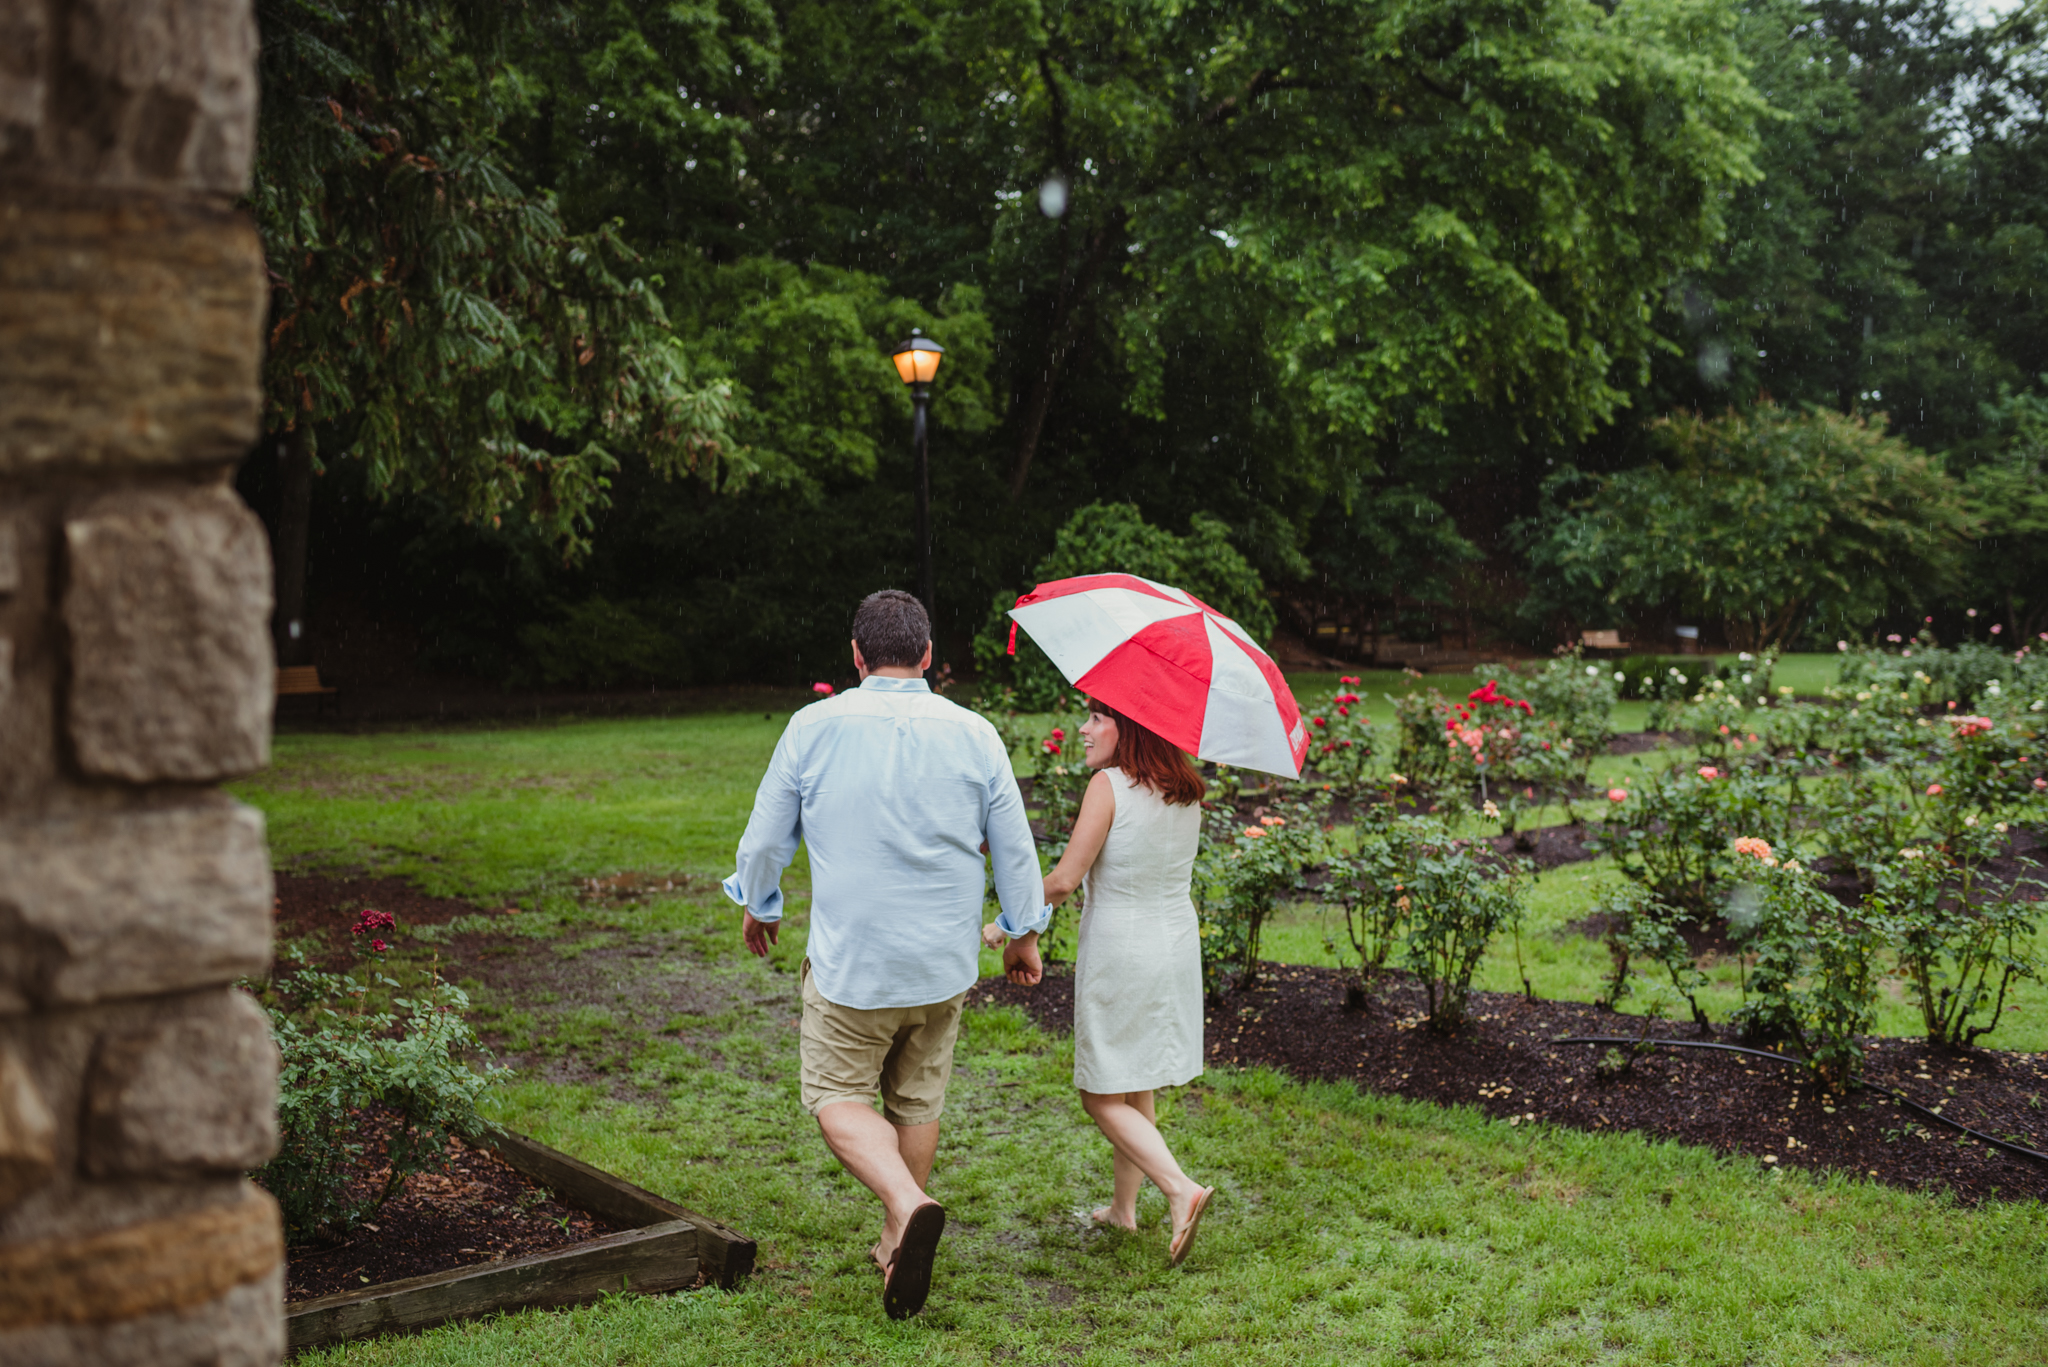 The bride and groom to be go walk under the umbrella during the rainstorm in Raleigh, during their engagement session with Rose Trail Images.